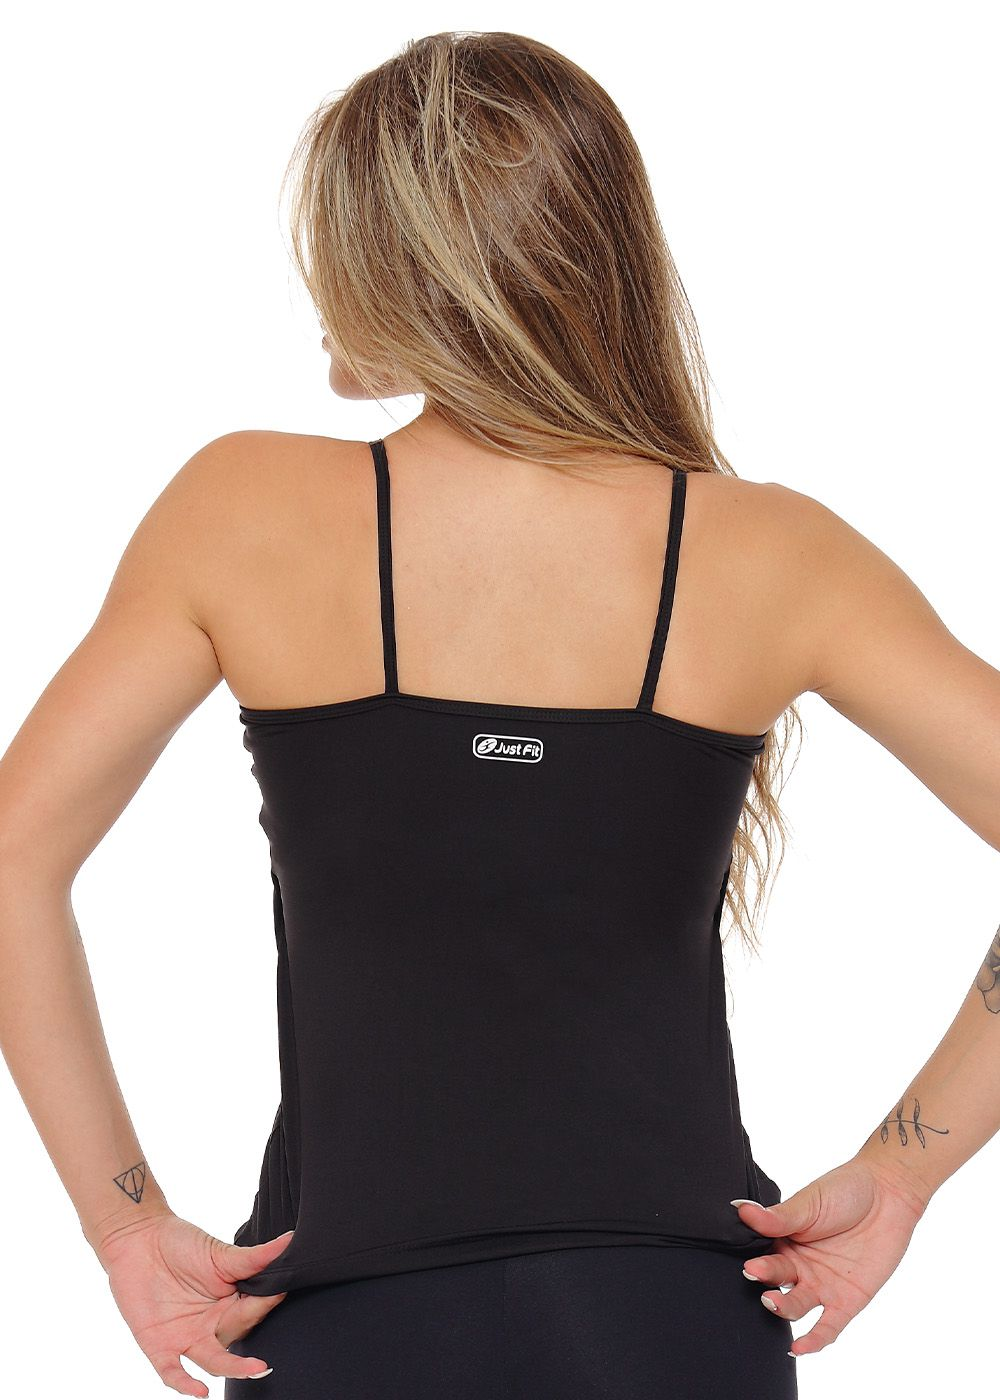 REGATA ALCINHA COM BOJO  JUST FIT - PRETO